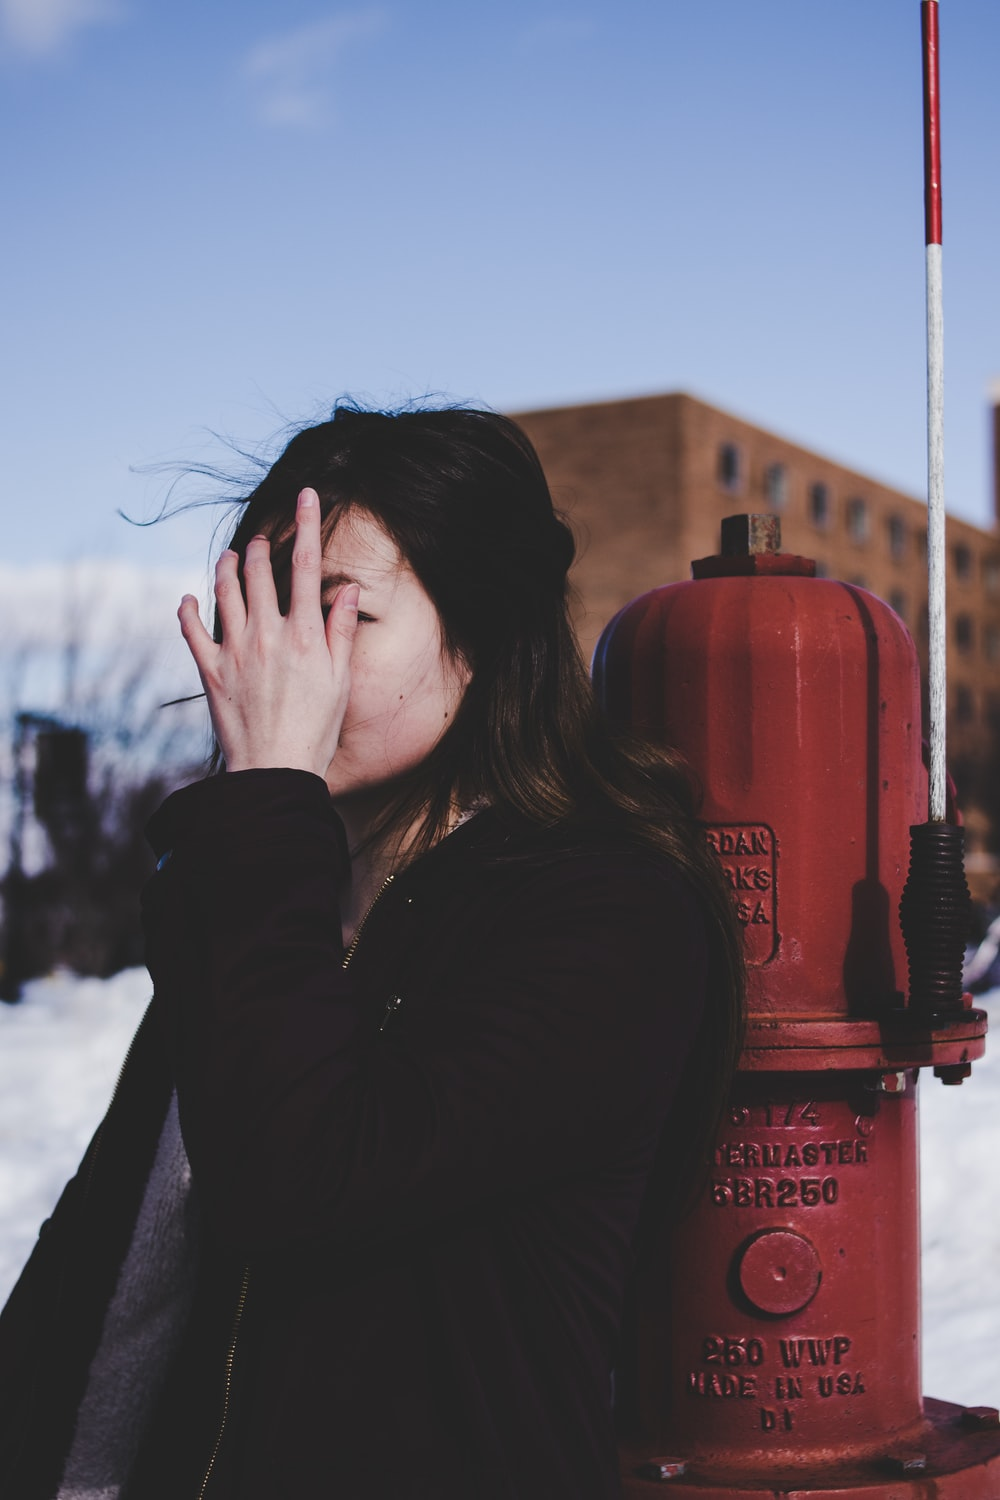 woman leaning beside red fire hydrant